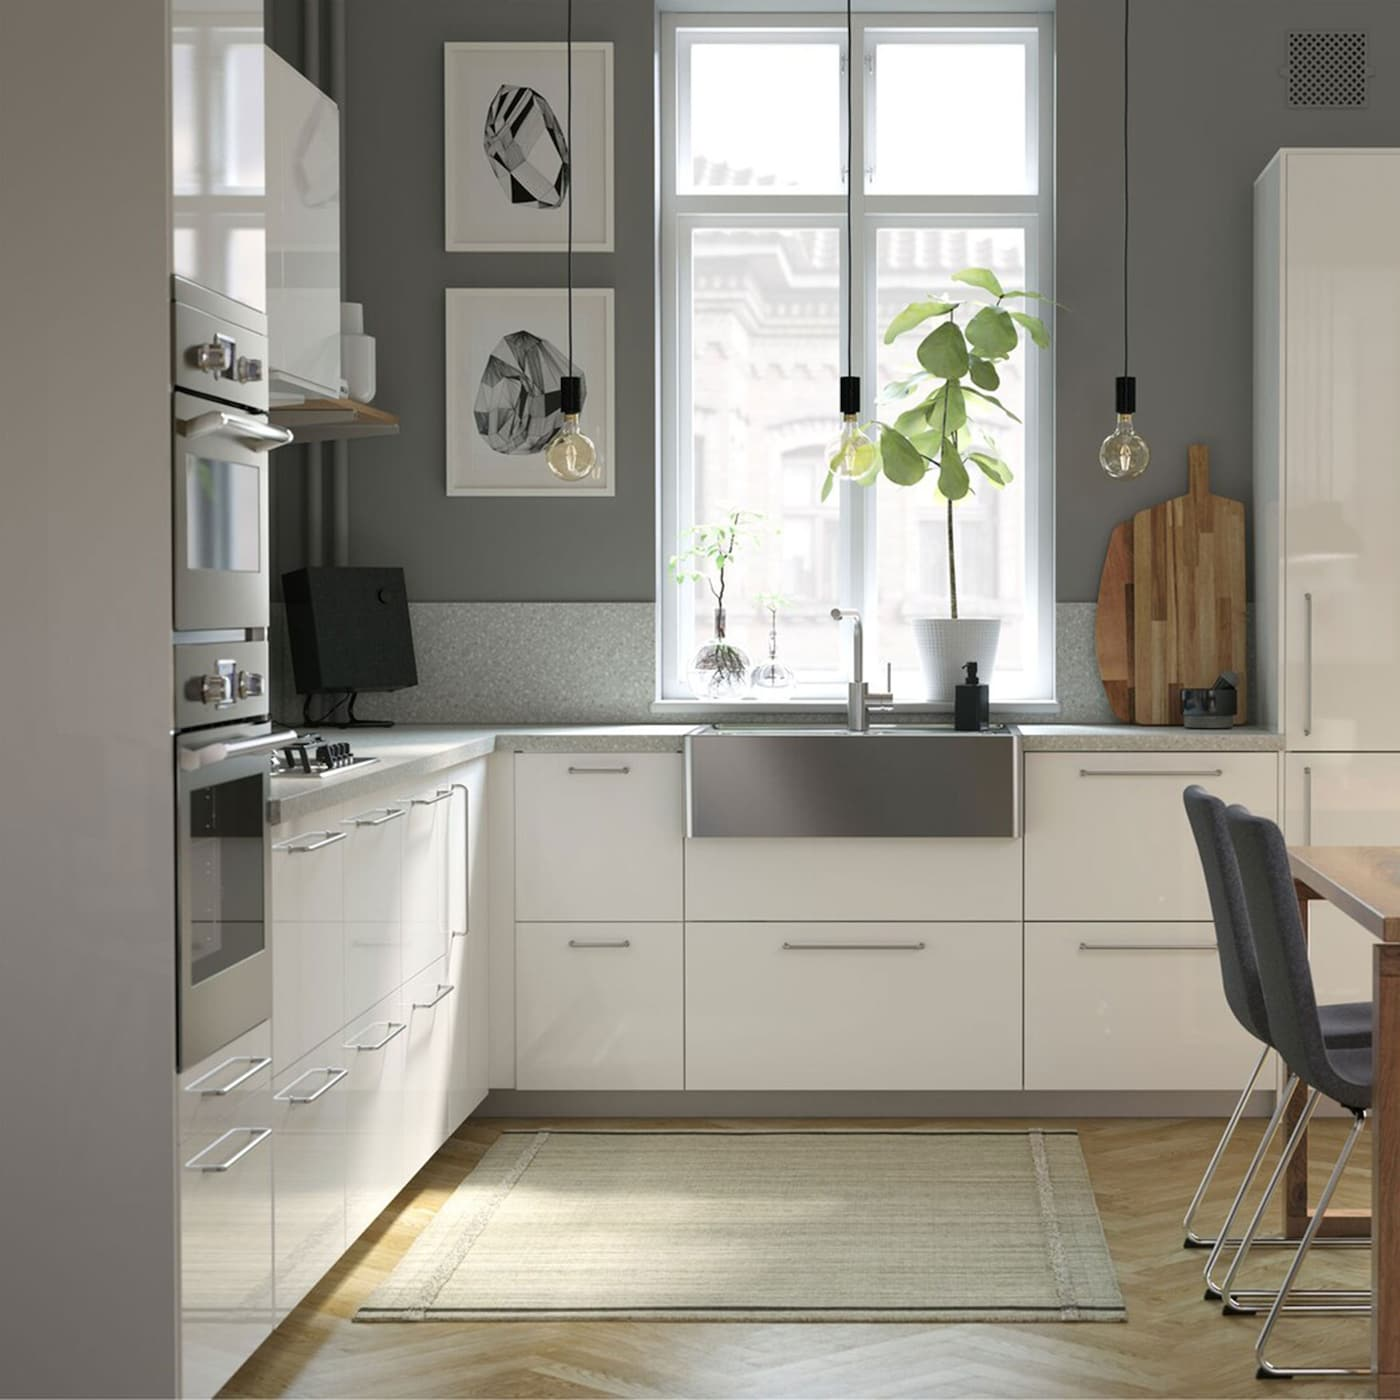 Cucina Piccola Angolare Ikea kitchen gallery - ikea switzerland